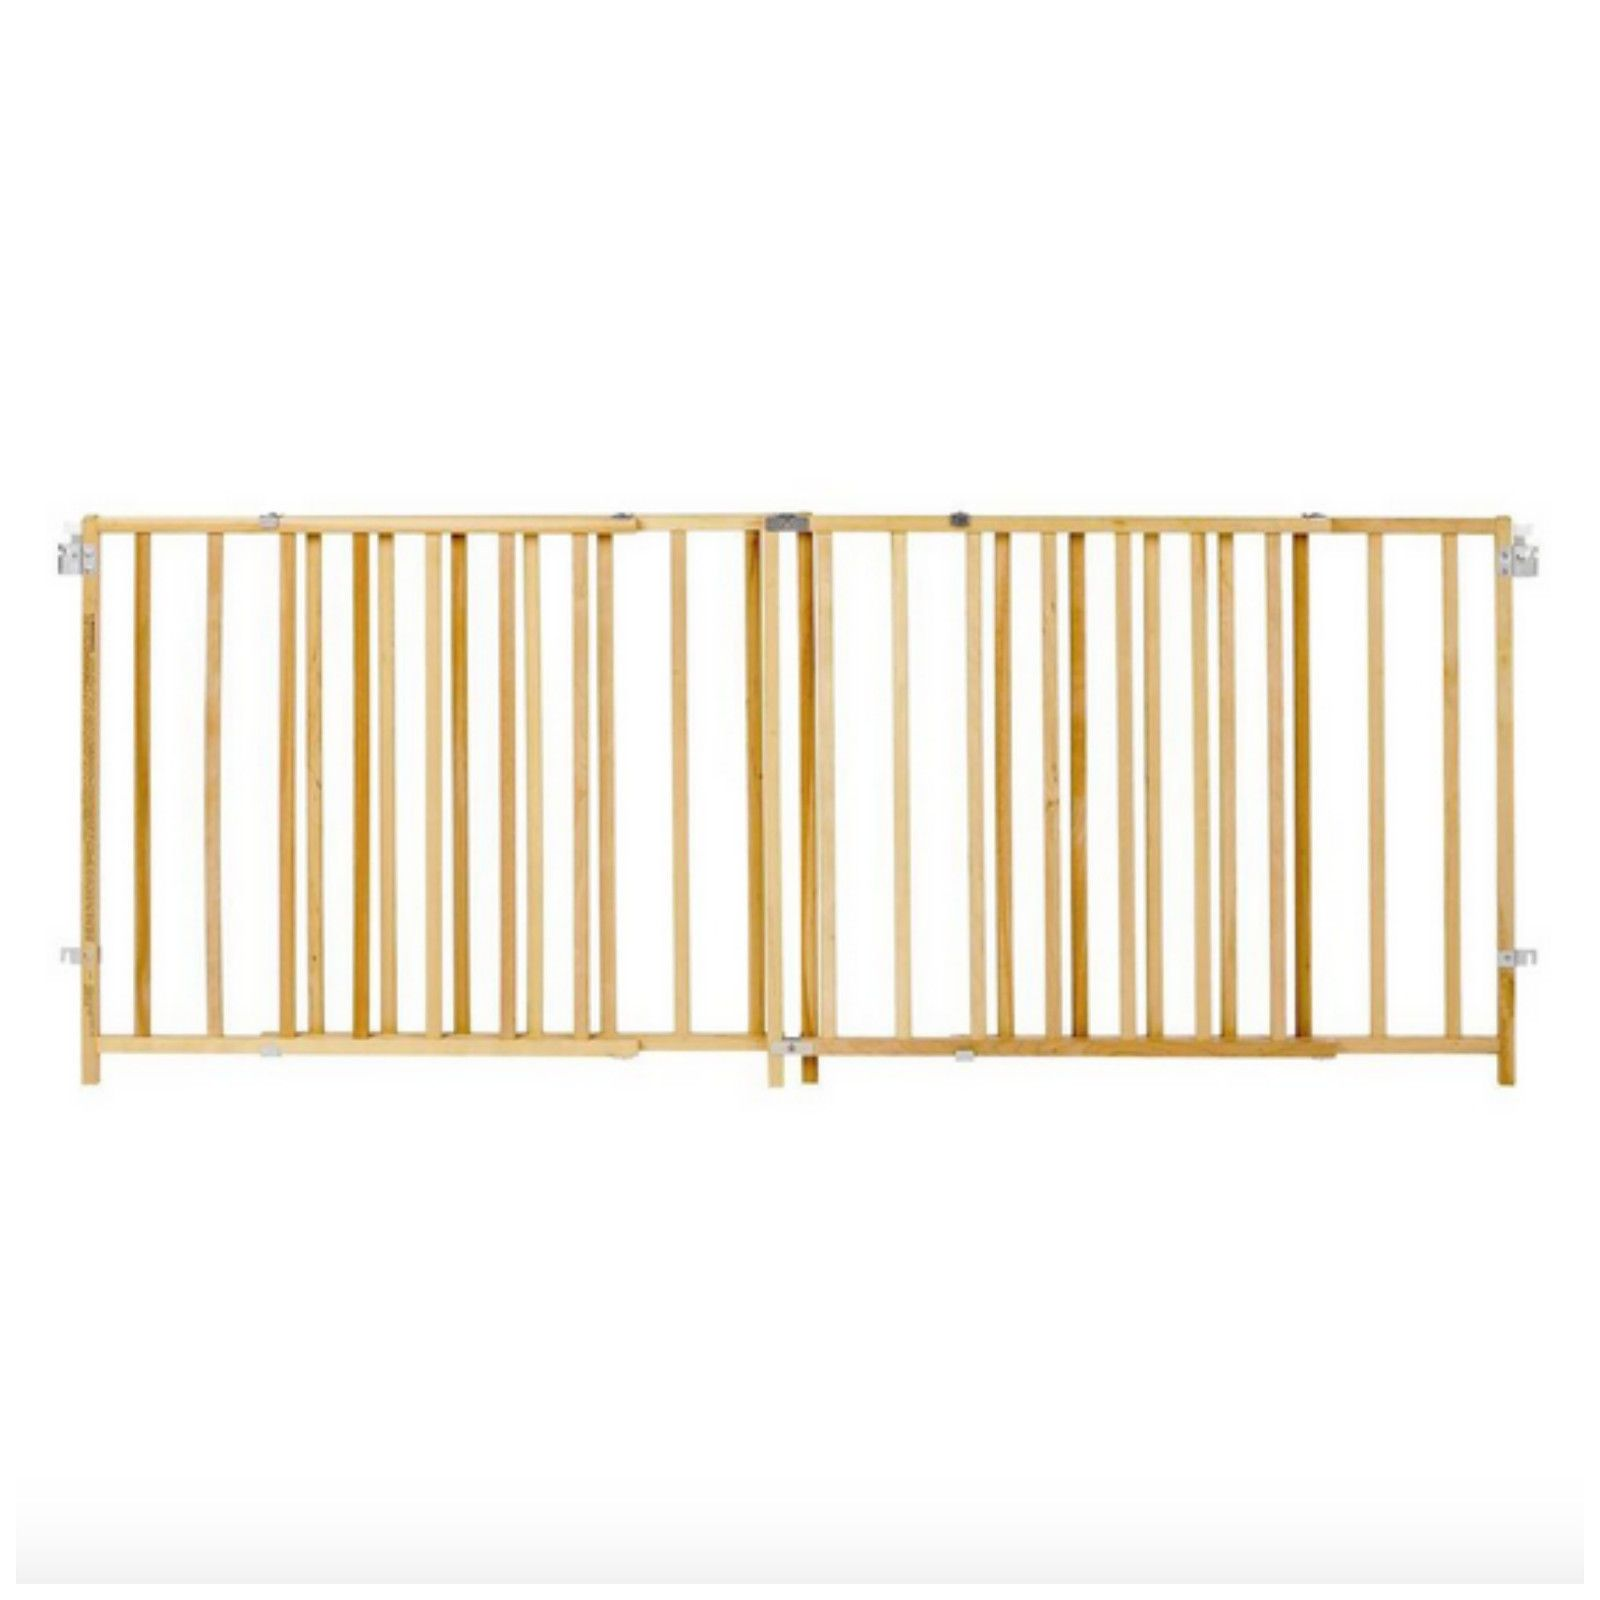 Child Proof Gates With Pet Door Baby Safety Gate Wide Child Dog